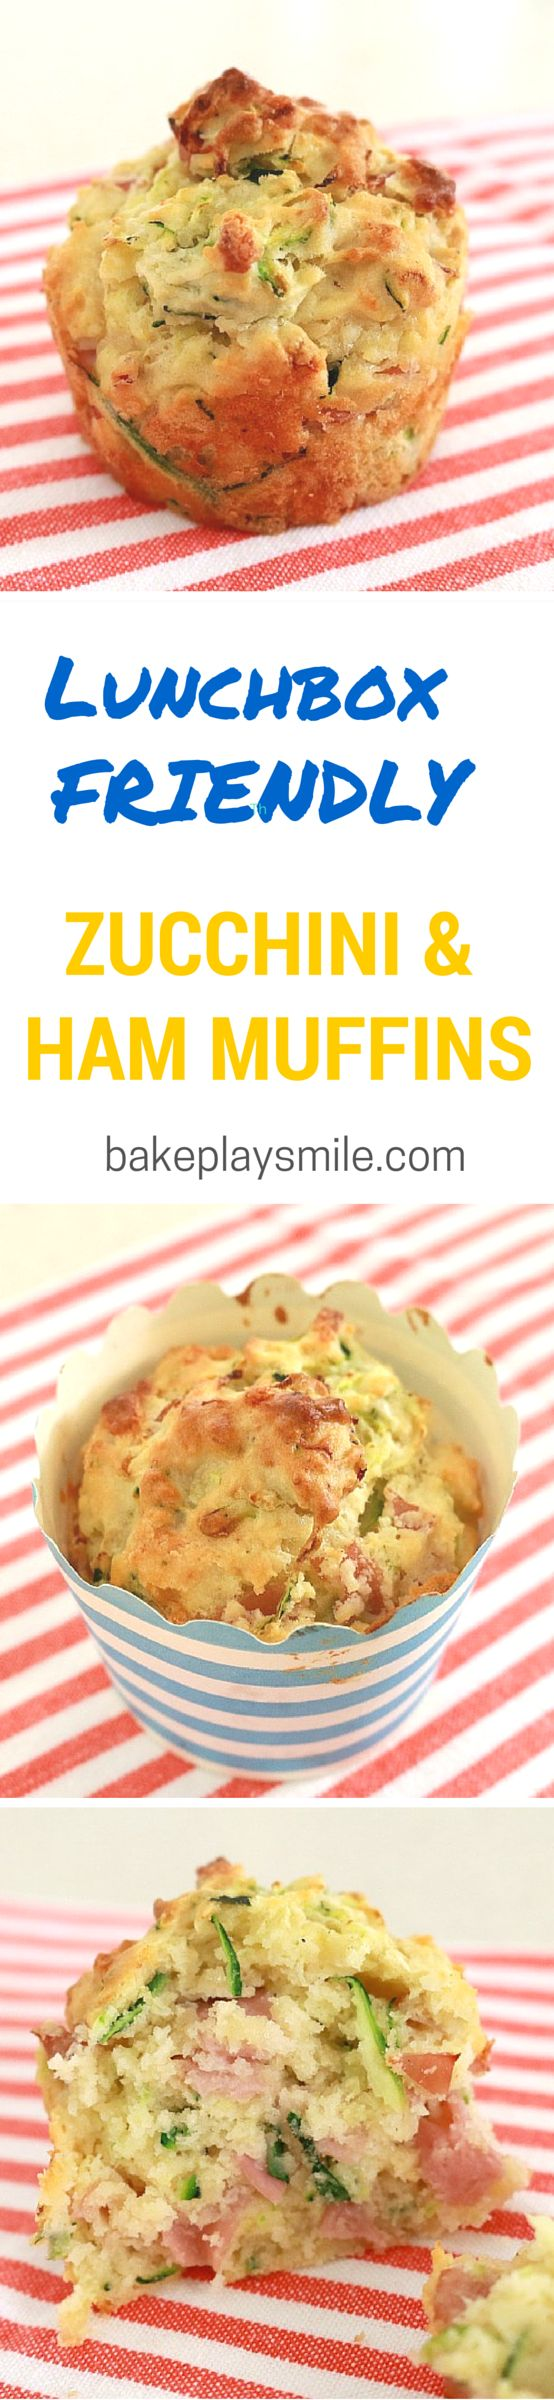 Finally something that kids will actually eat! This is one of my favourite recipes for sneaking vegetables in! #zucchini #ham #muffins #savoury #lunchbox #kids #snacks #healthy